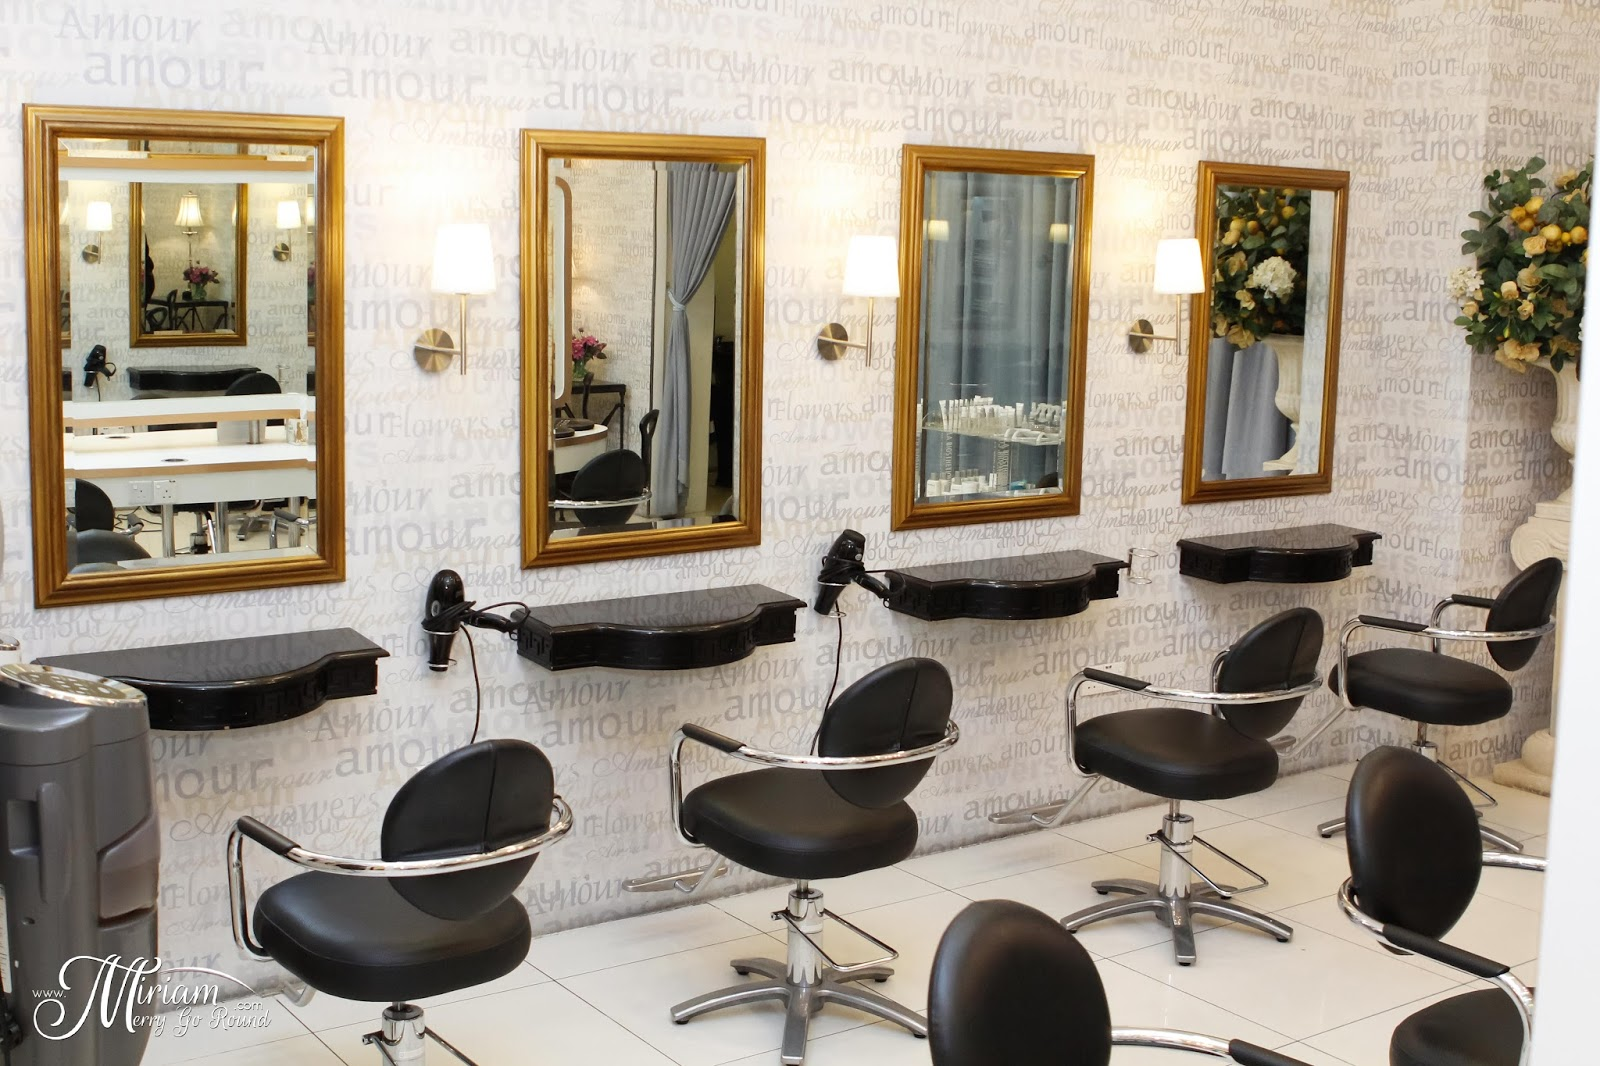 andy ho haute coiffure hair makeover - Salon Coiffure